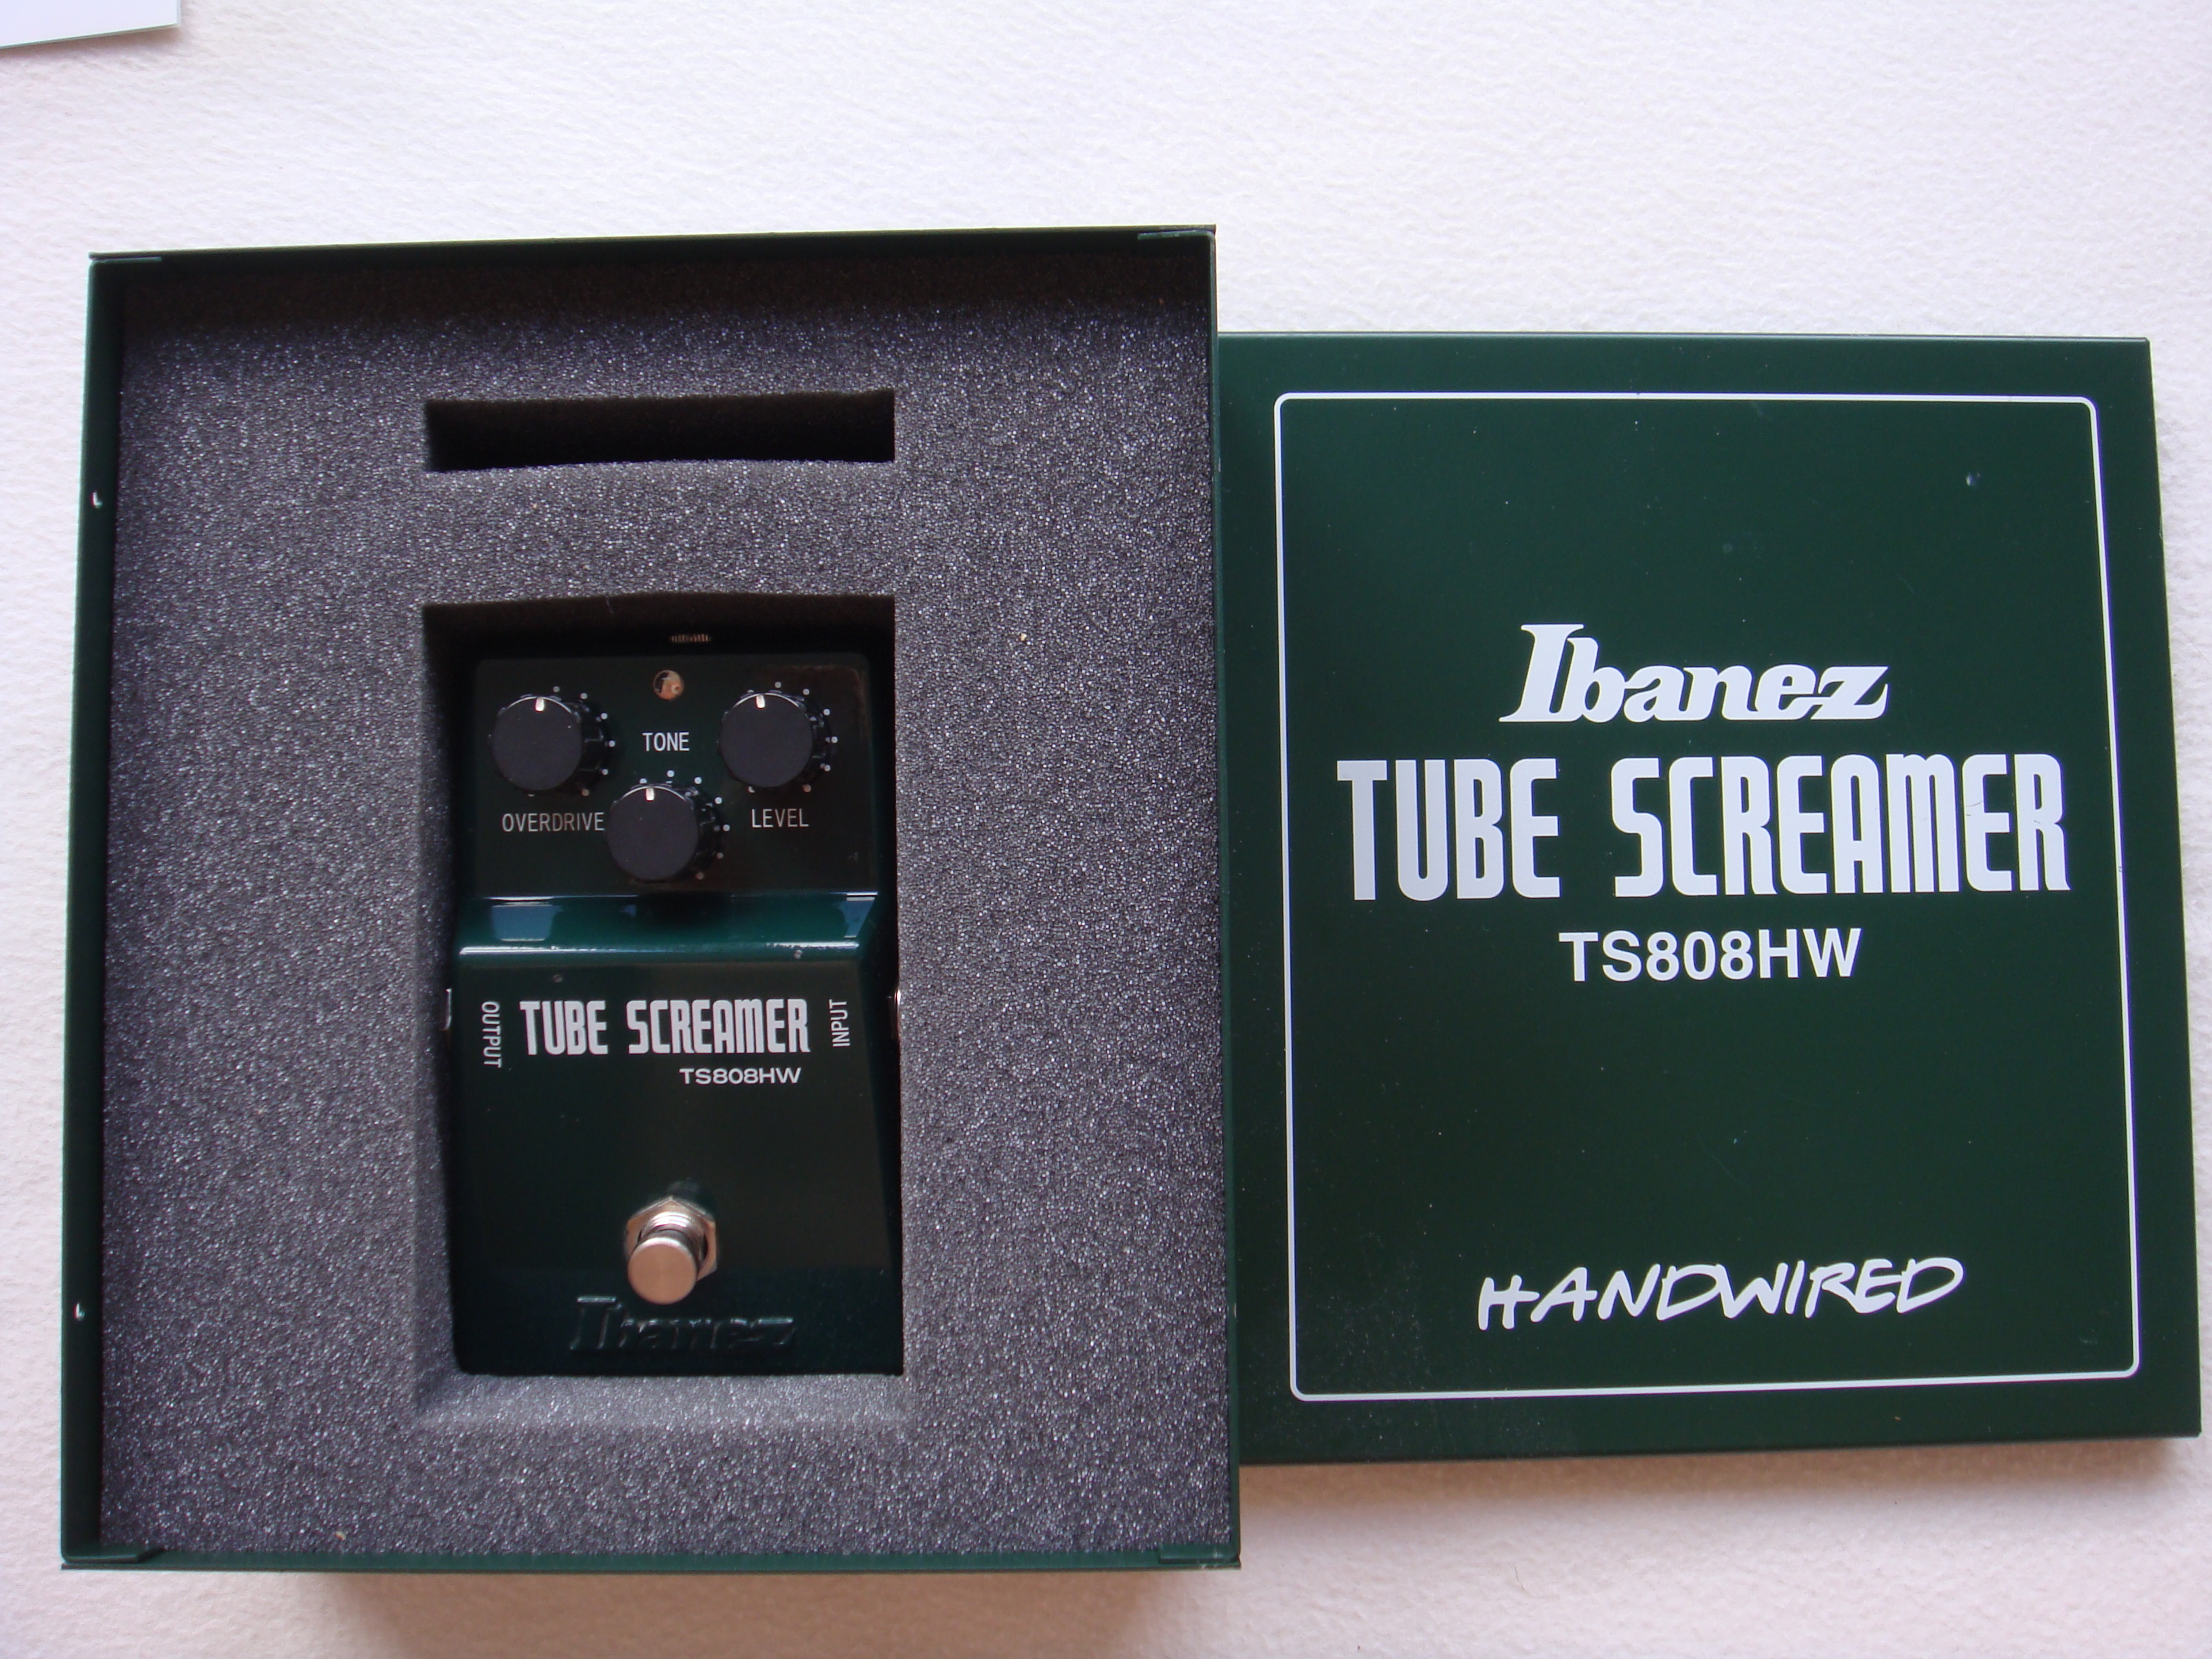 Ibanez Hand Wired Tube Screamer Data Wiring Diagram Linear Ic Tester Circuit Tradeoficcom Ts808hw Image 1478842 Audiofanzine Rh En Com Review